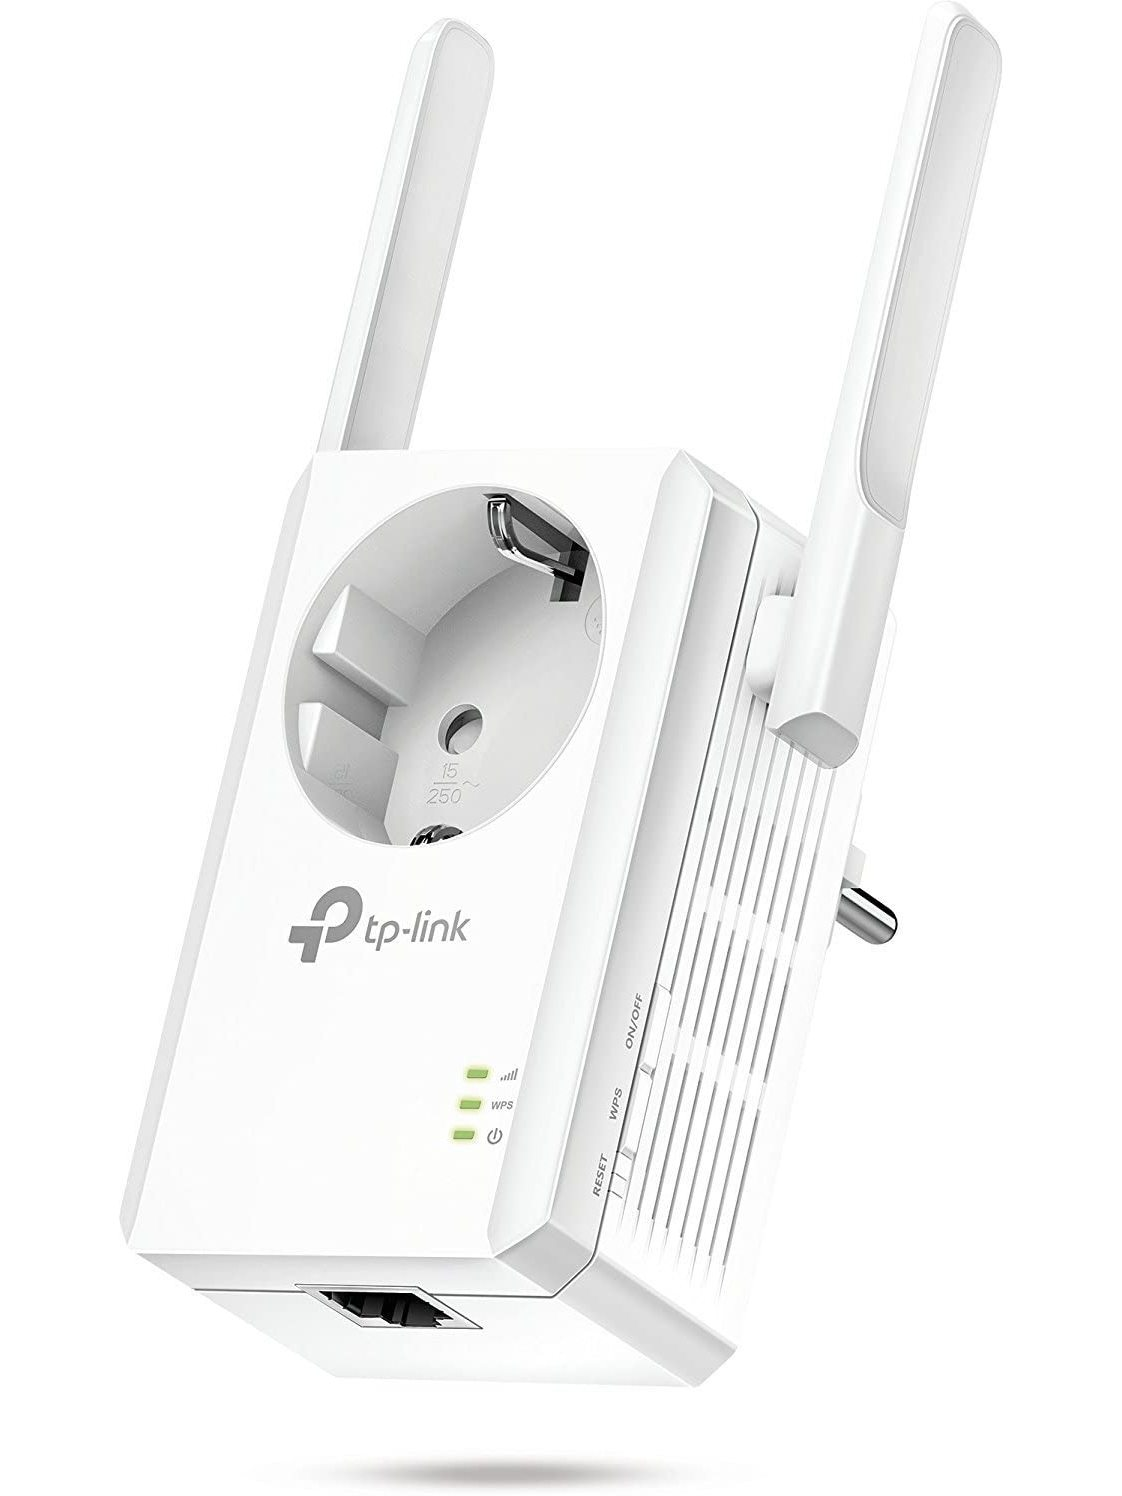 TP Link TL-WA860RE N300 Wifi Network Repeater Extender Amplifier Ethernet Port With Plug 300 Mbps 2 External Antennas